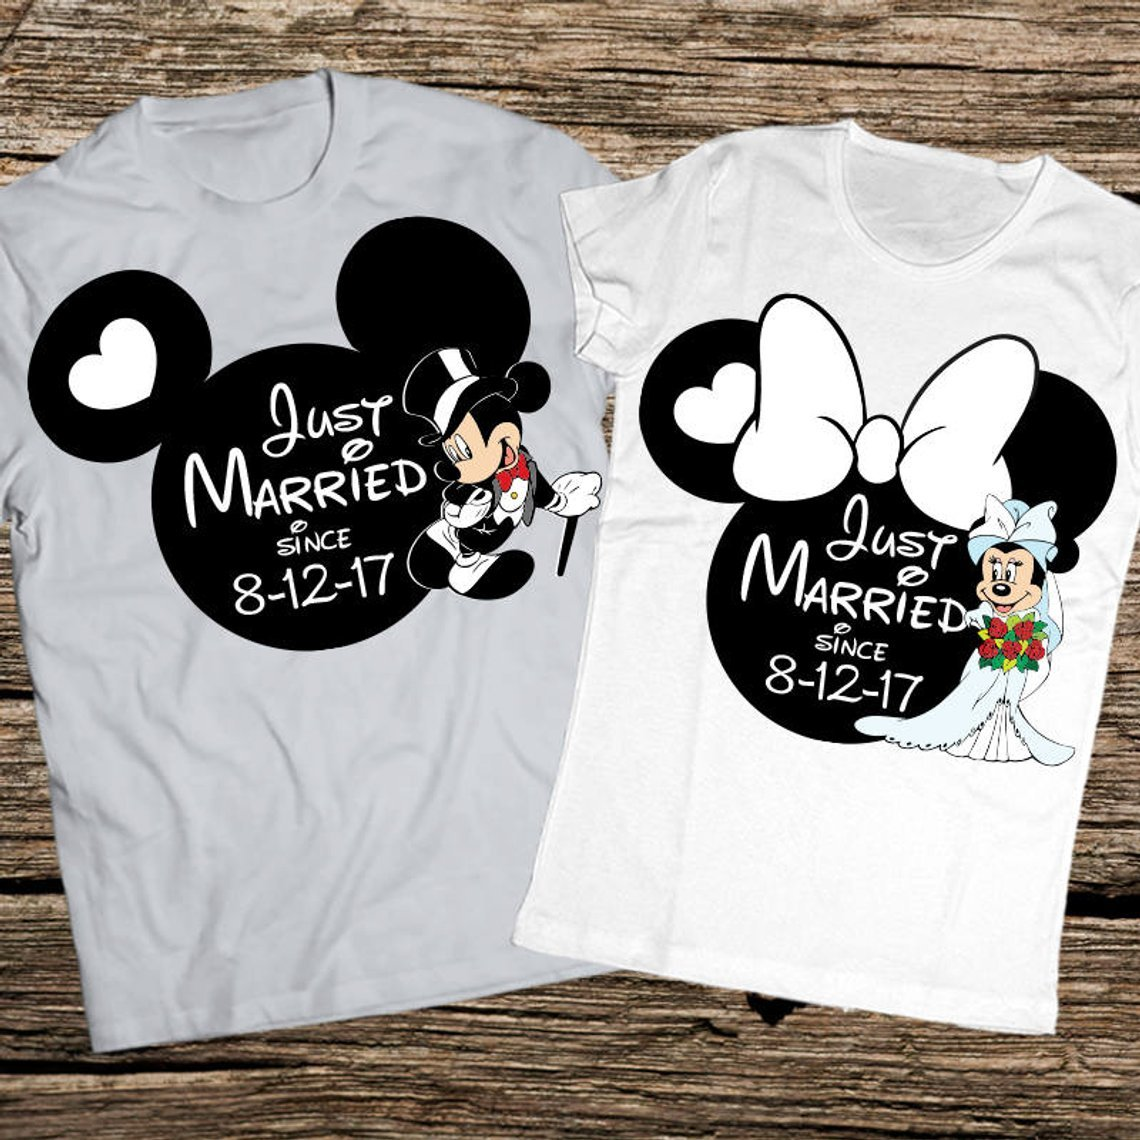 Just married wedding date disney couple shirt